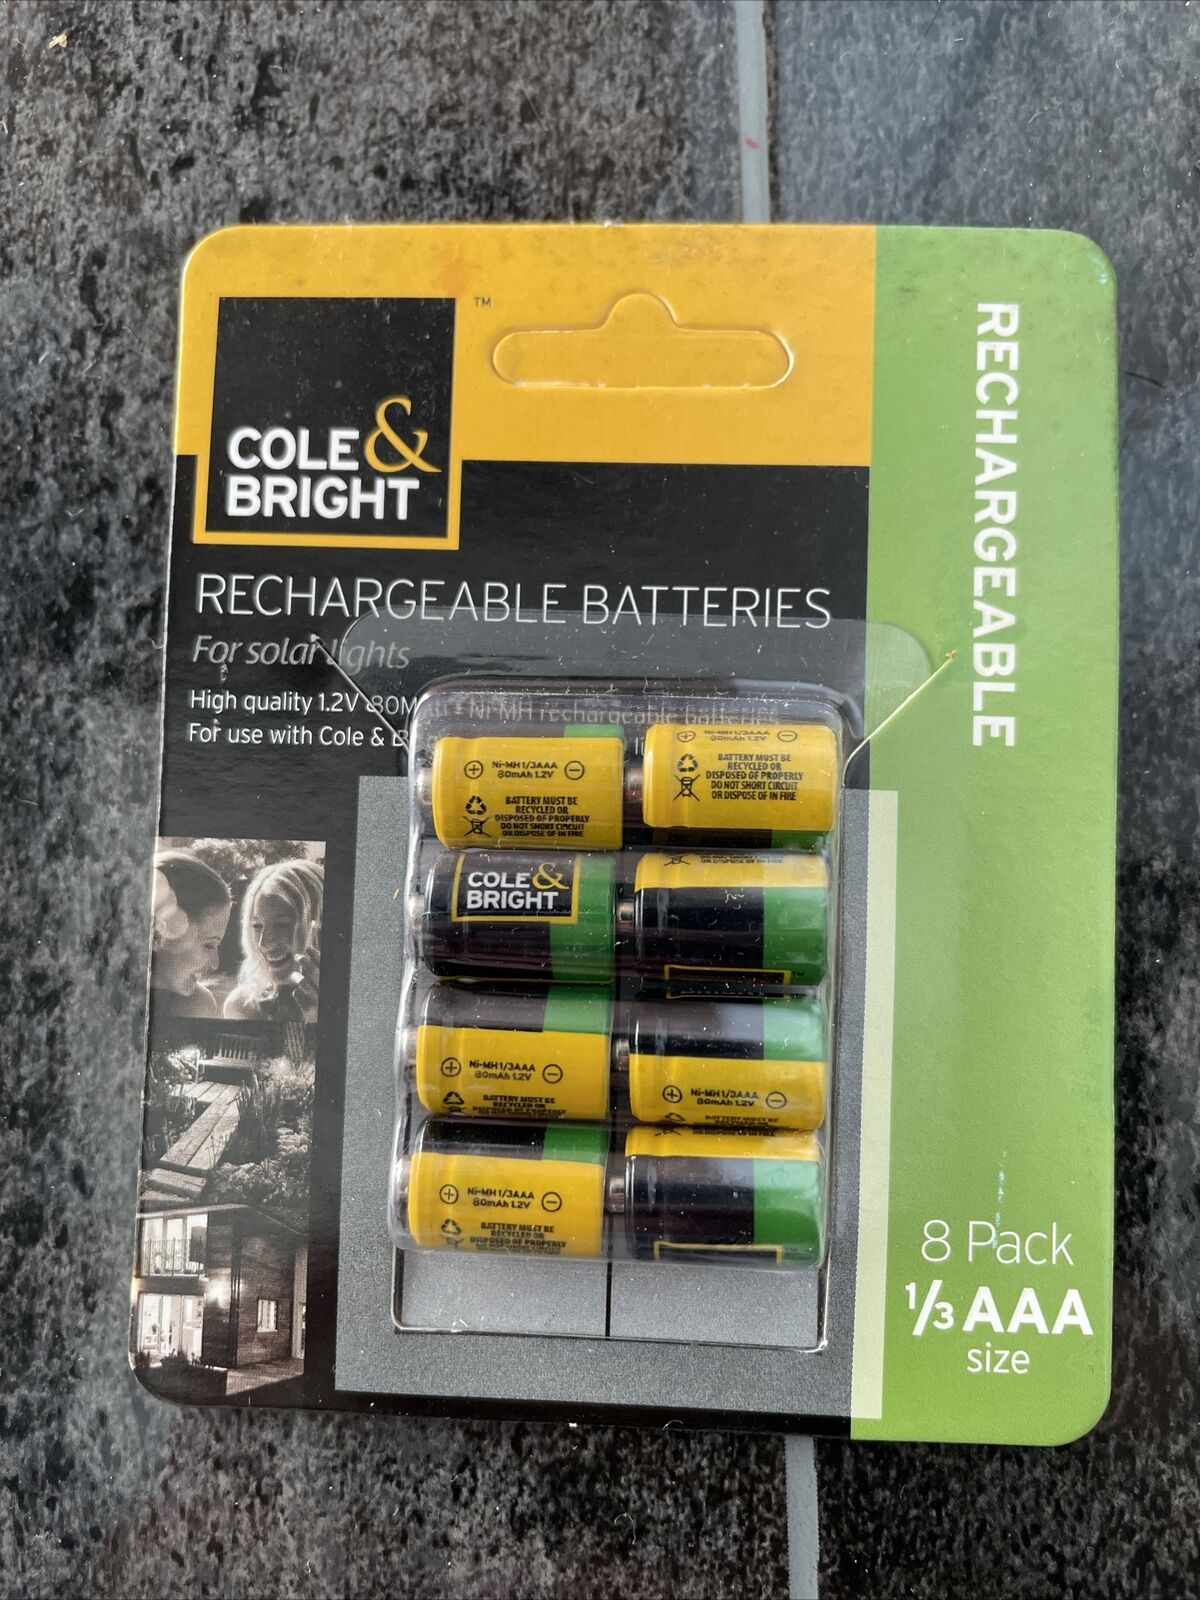 1/3 aaa battery cole & bright